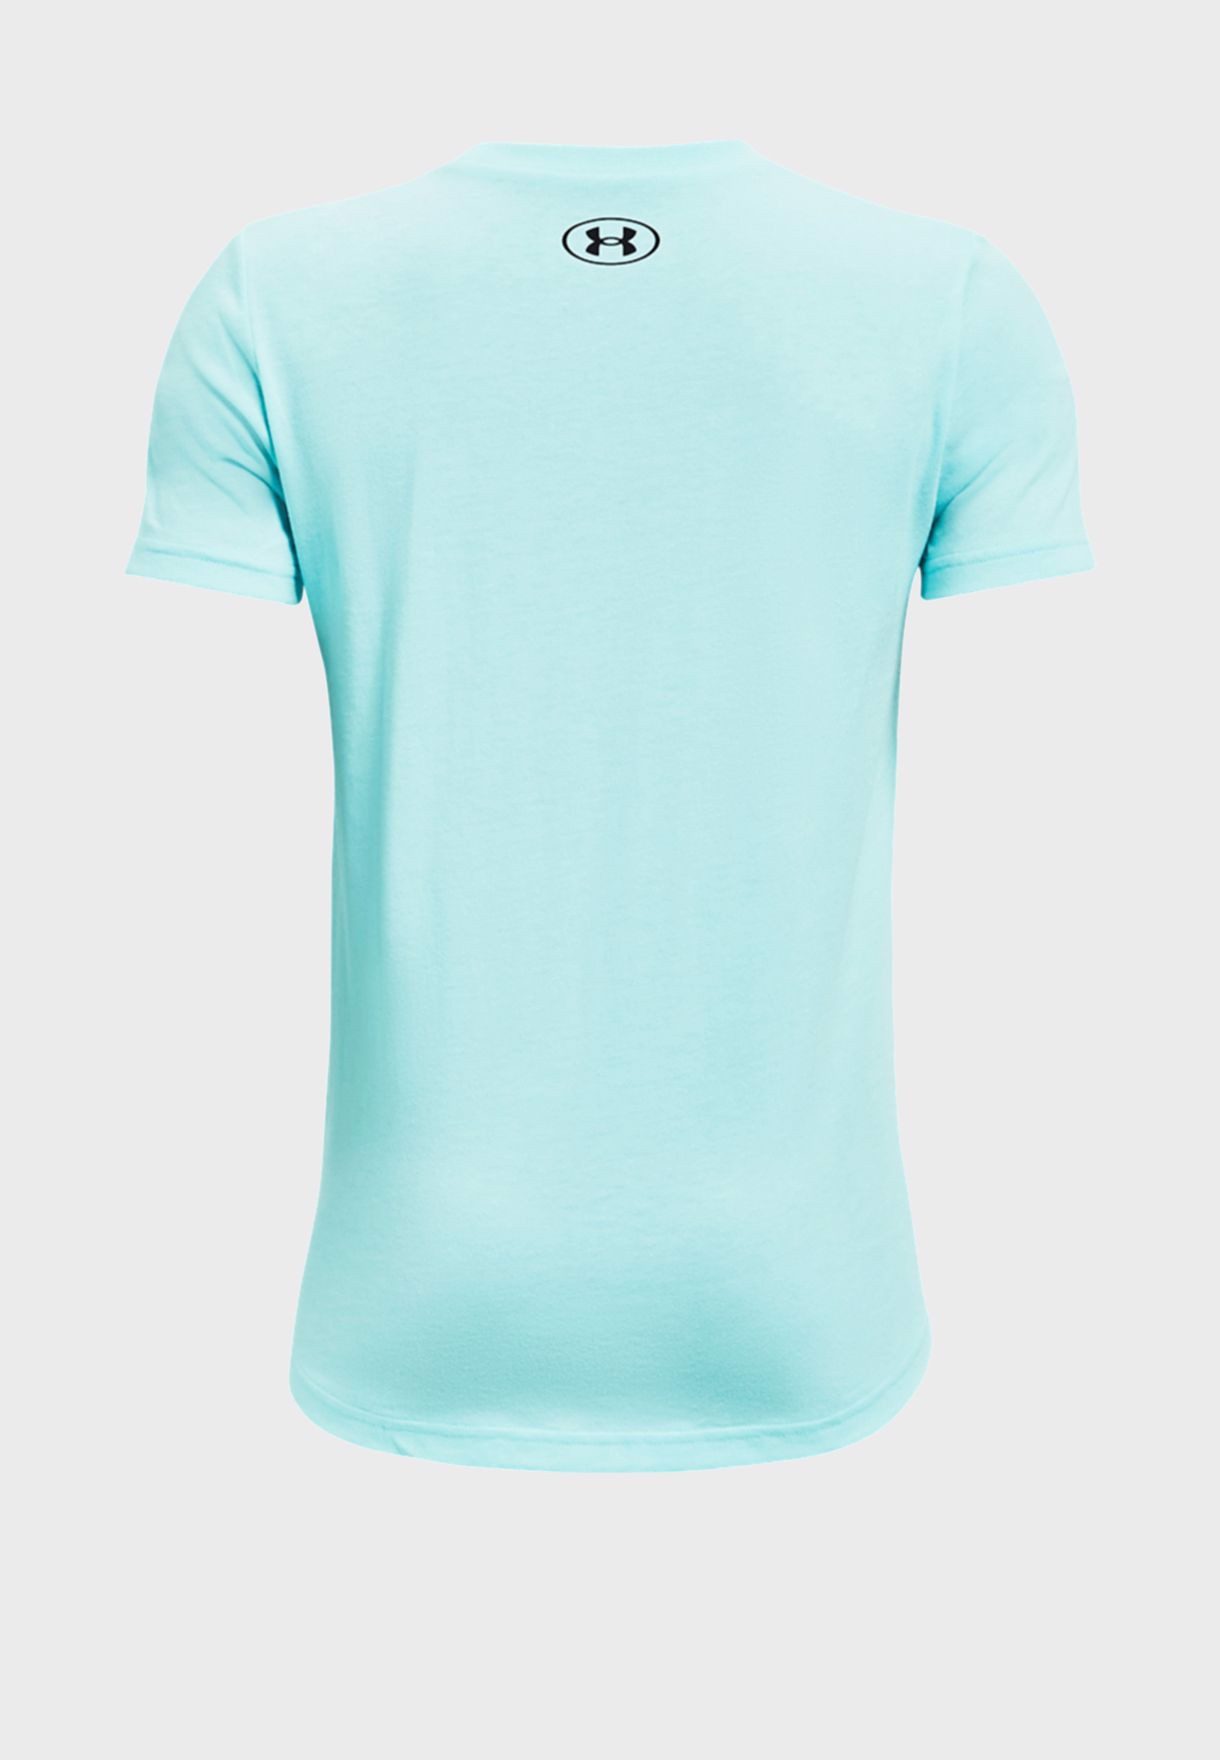 Under Armour - Áo thun Bé Trai Graphic Tees Ice Cream Casual SS21-1361